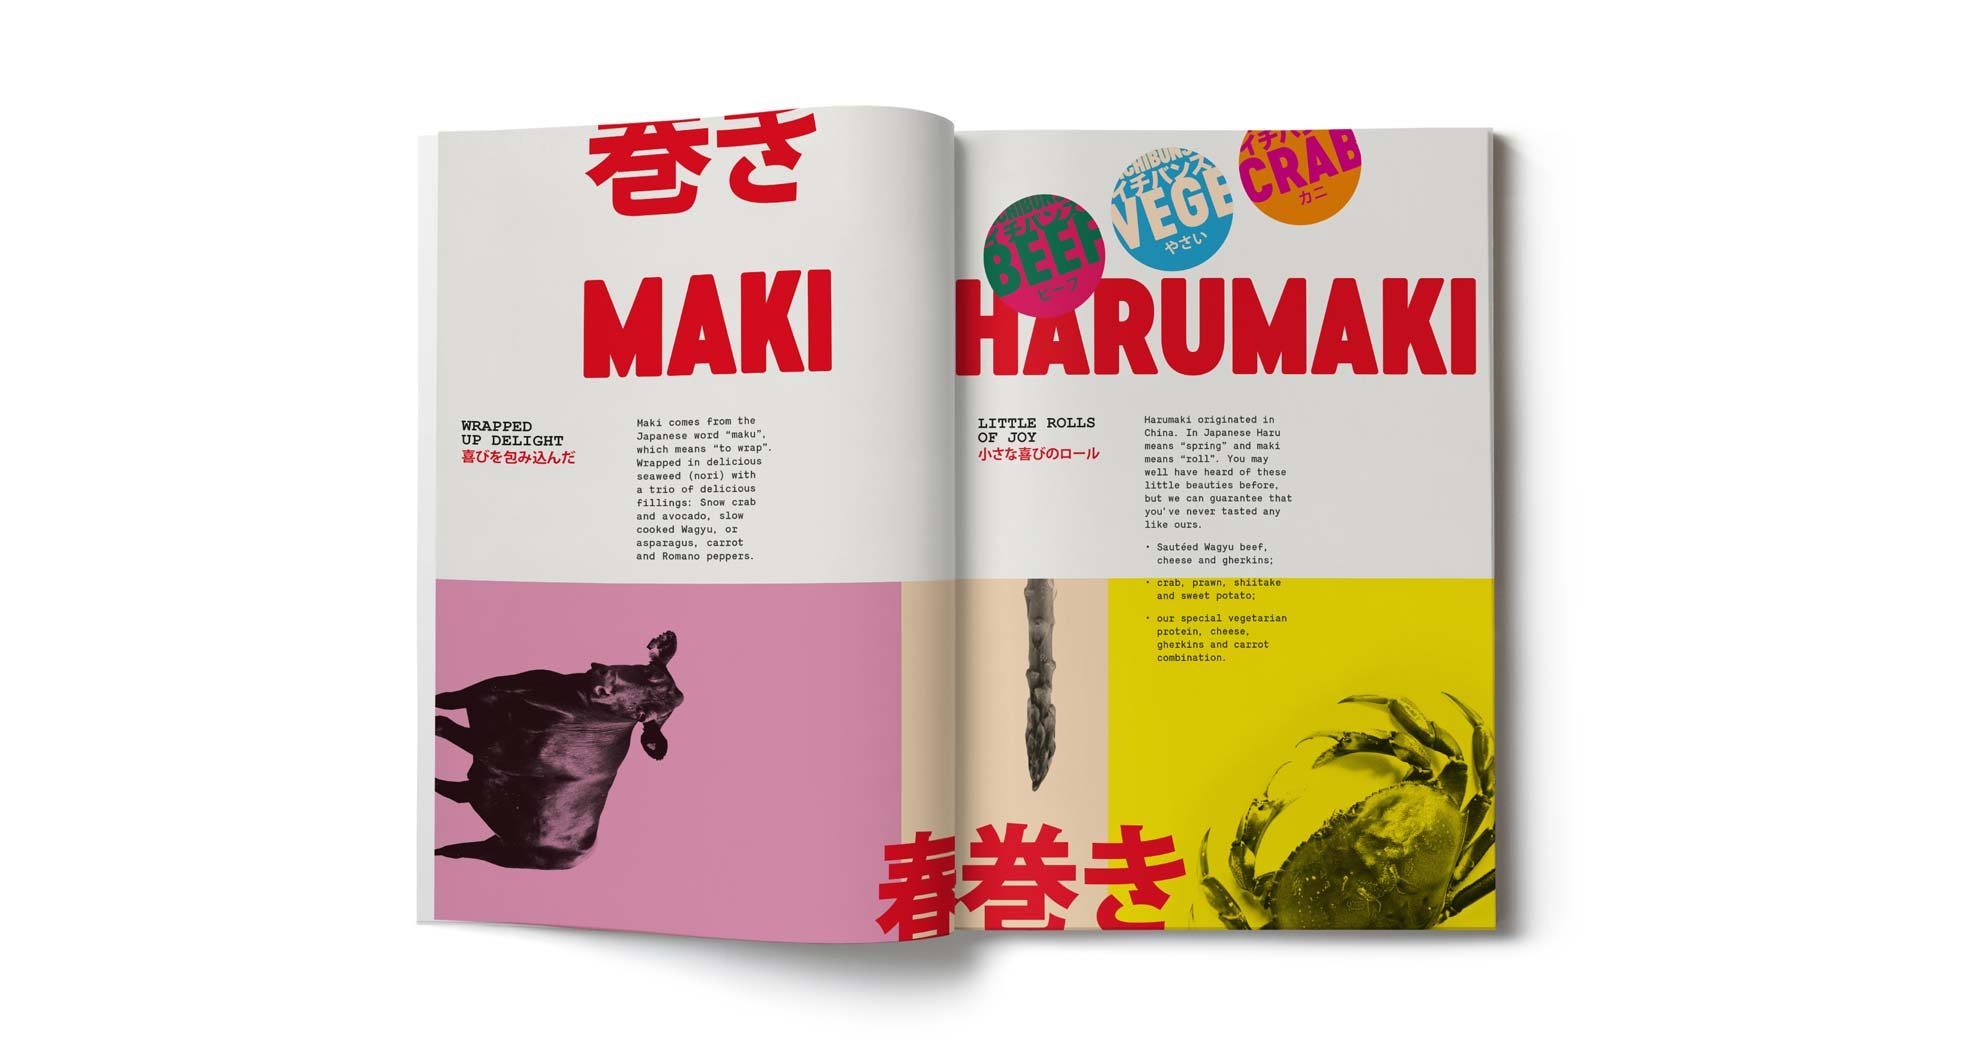 Creating a brand book for Ichibuns, a new Japanese concept restaurant in London